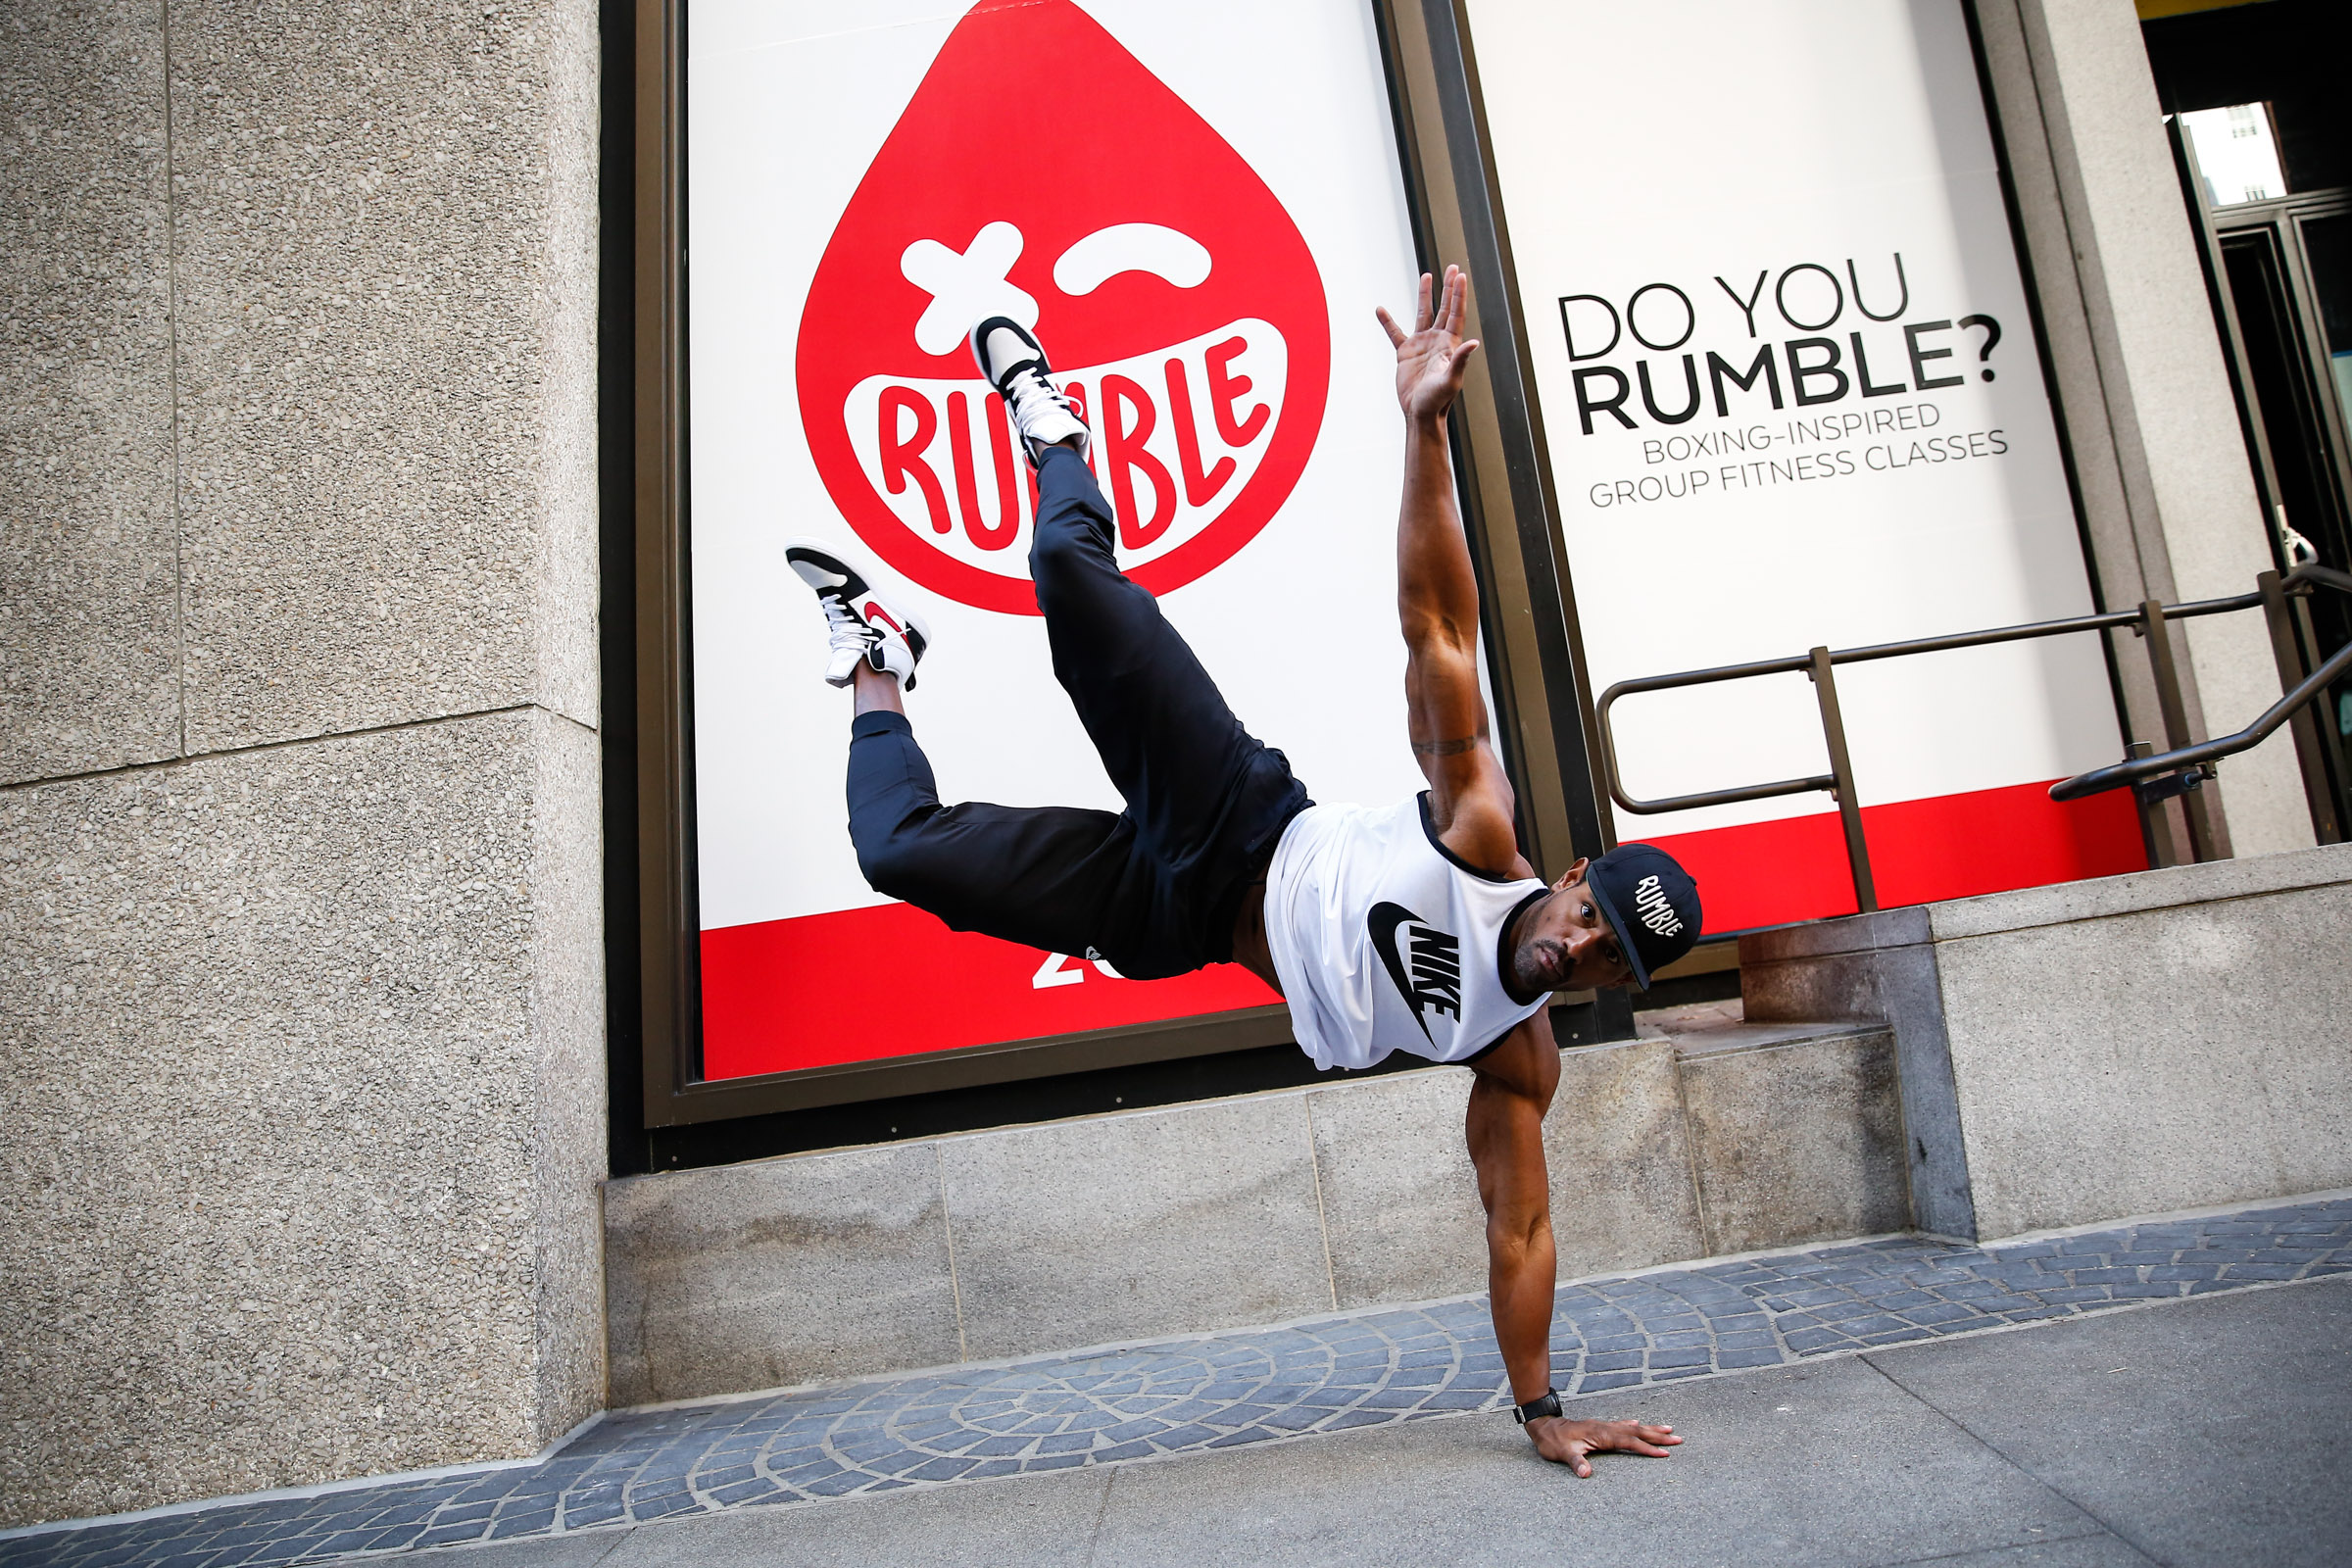 Photo:  TrappFotos  for Rumble